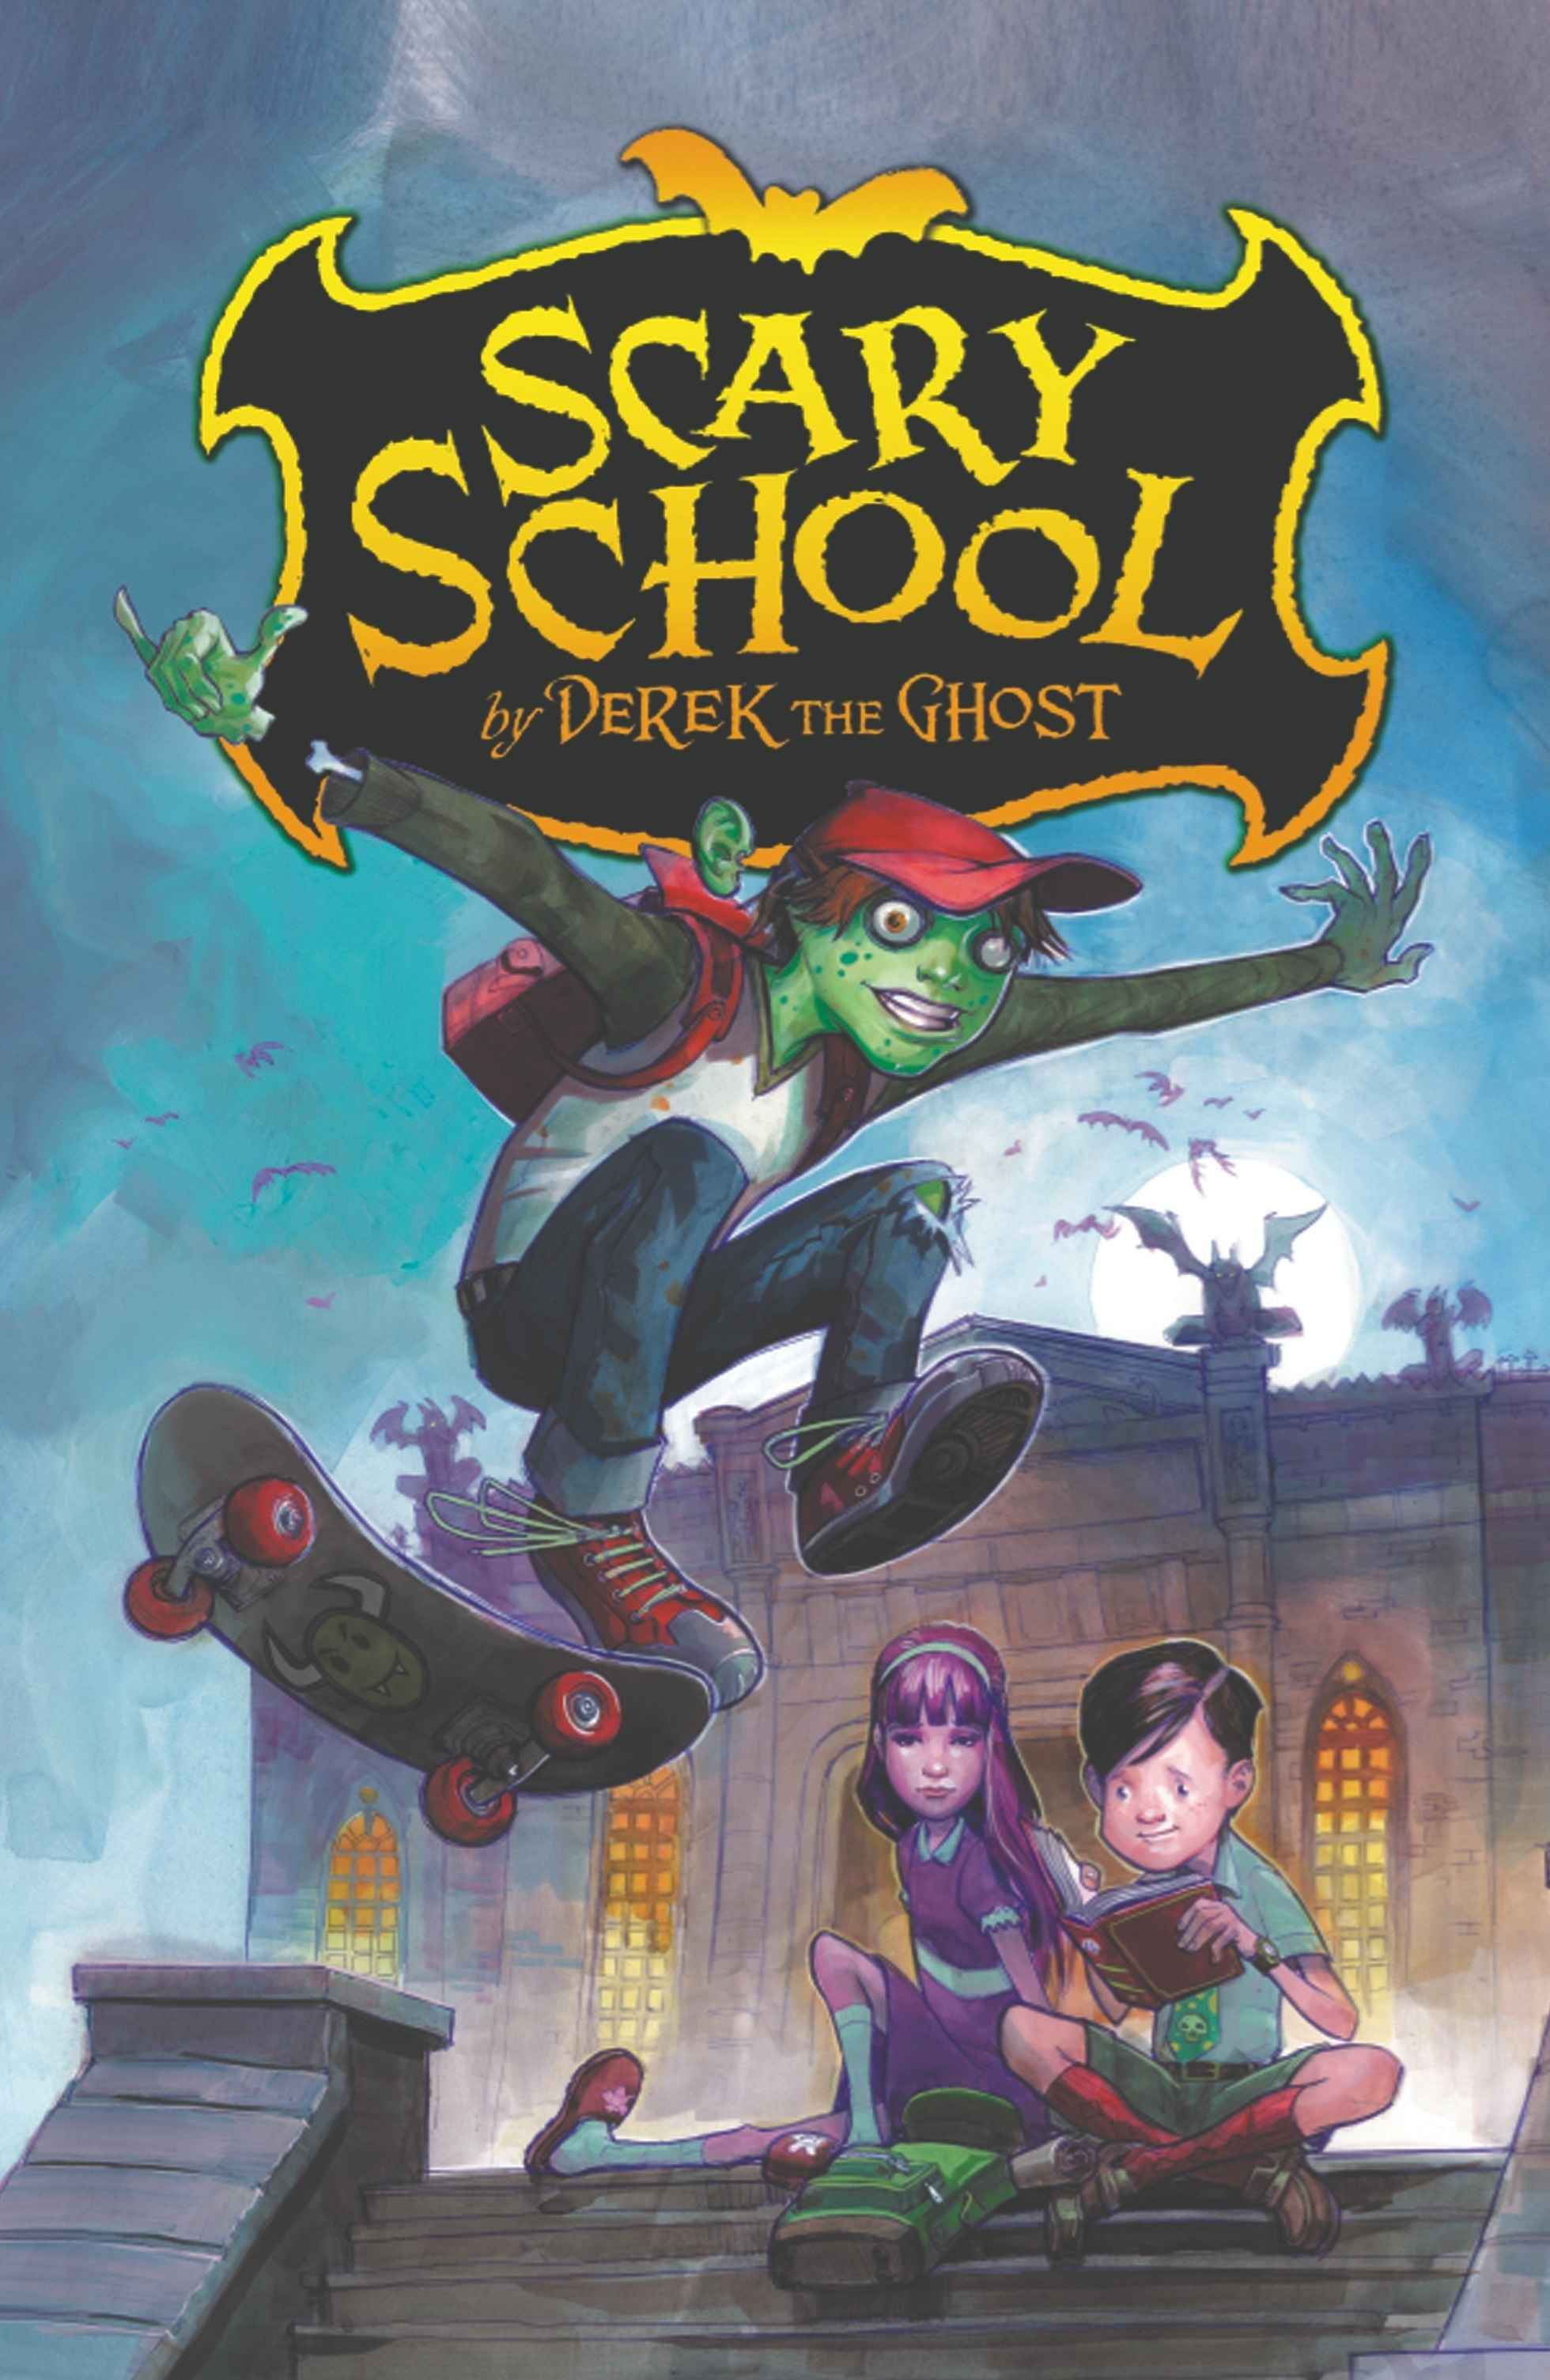 Scary School #1 - Purchase on AmazonPurchase at Barnes and Noble